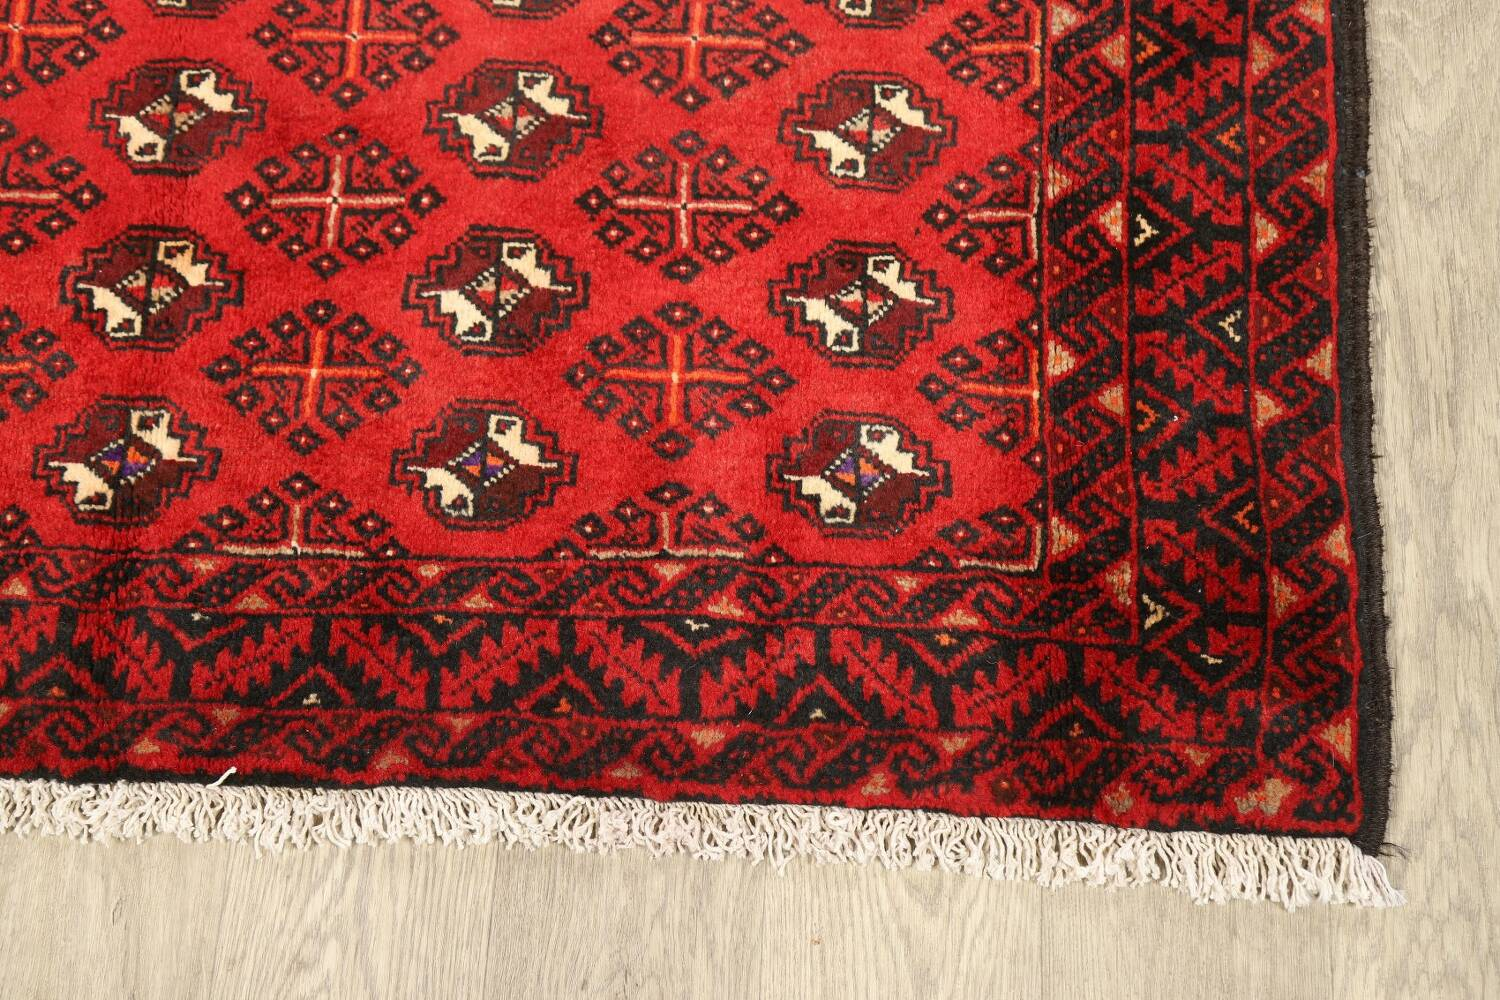 All-Over Red Geometric Balouch Persian Area Rug 4x7 image 6